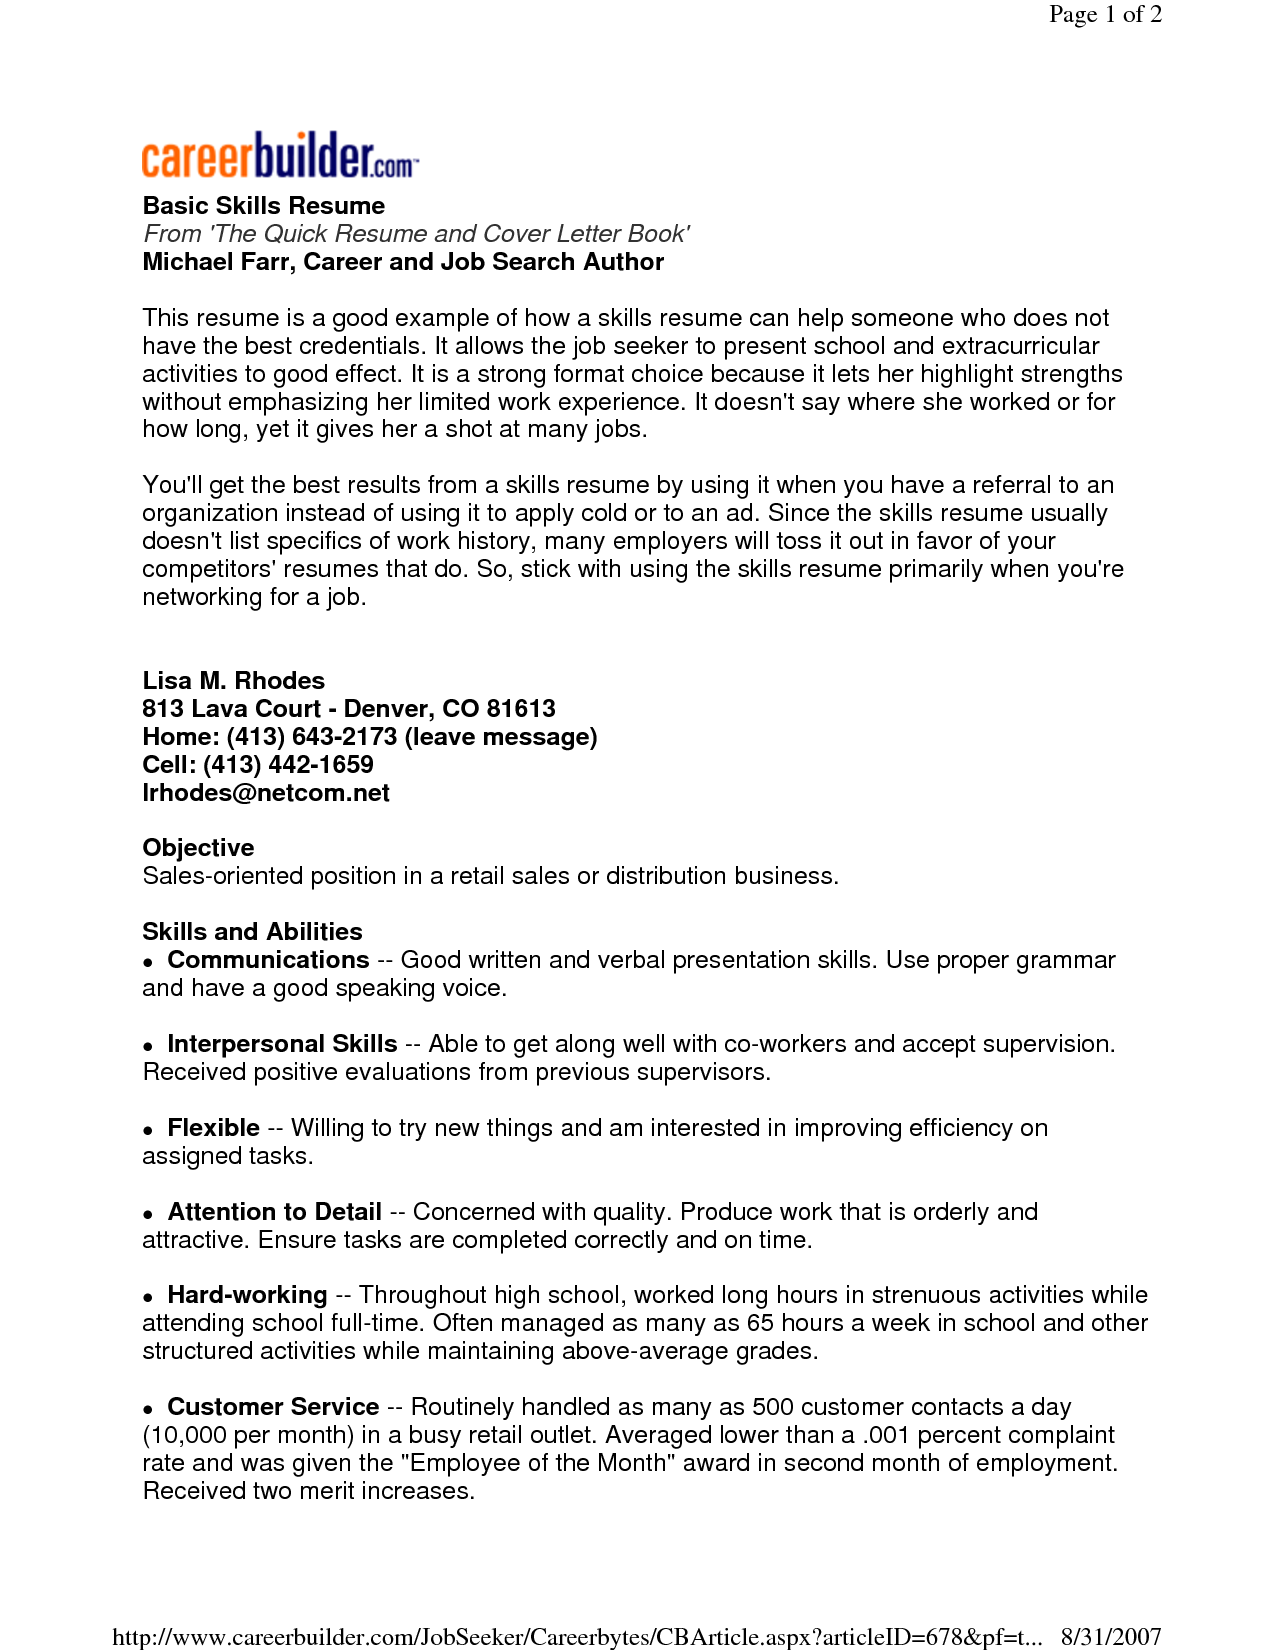 Free Resume Search Resume Objective Statement Sample Http Jobresumesample Find Here